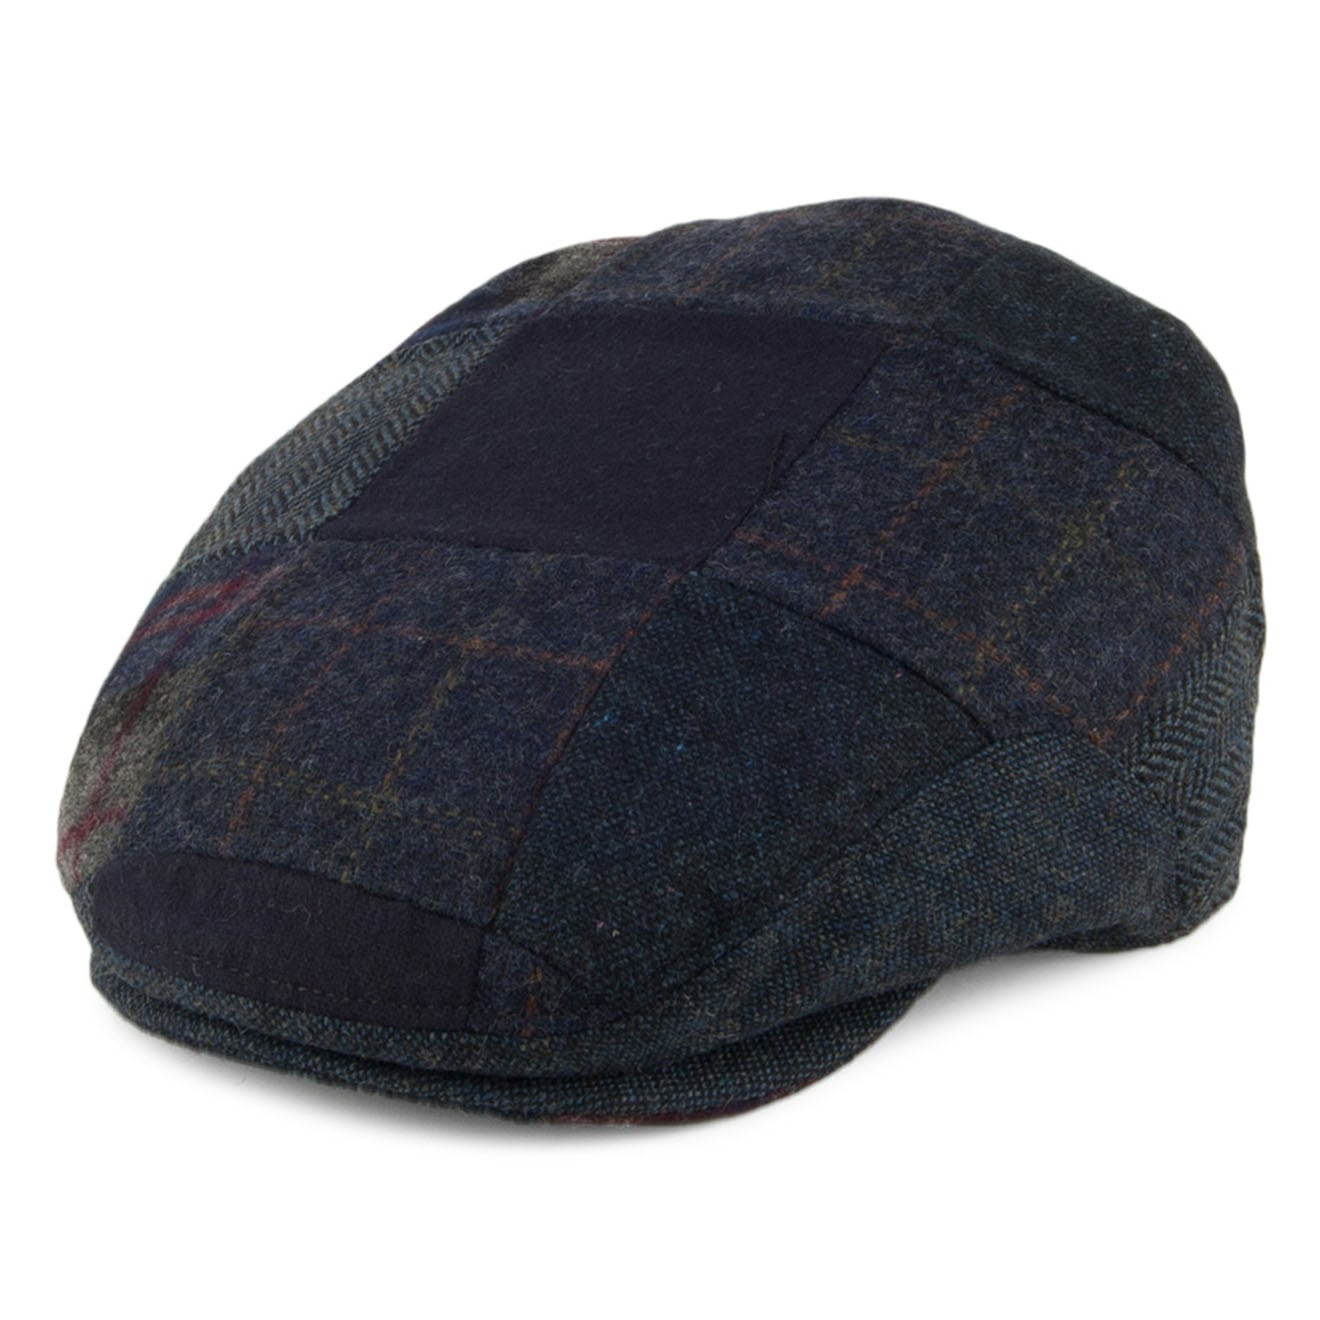 d22e2b9019f Barbour Patchwork Flat Cap Navy Mix - The Sporting Lodge